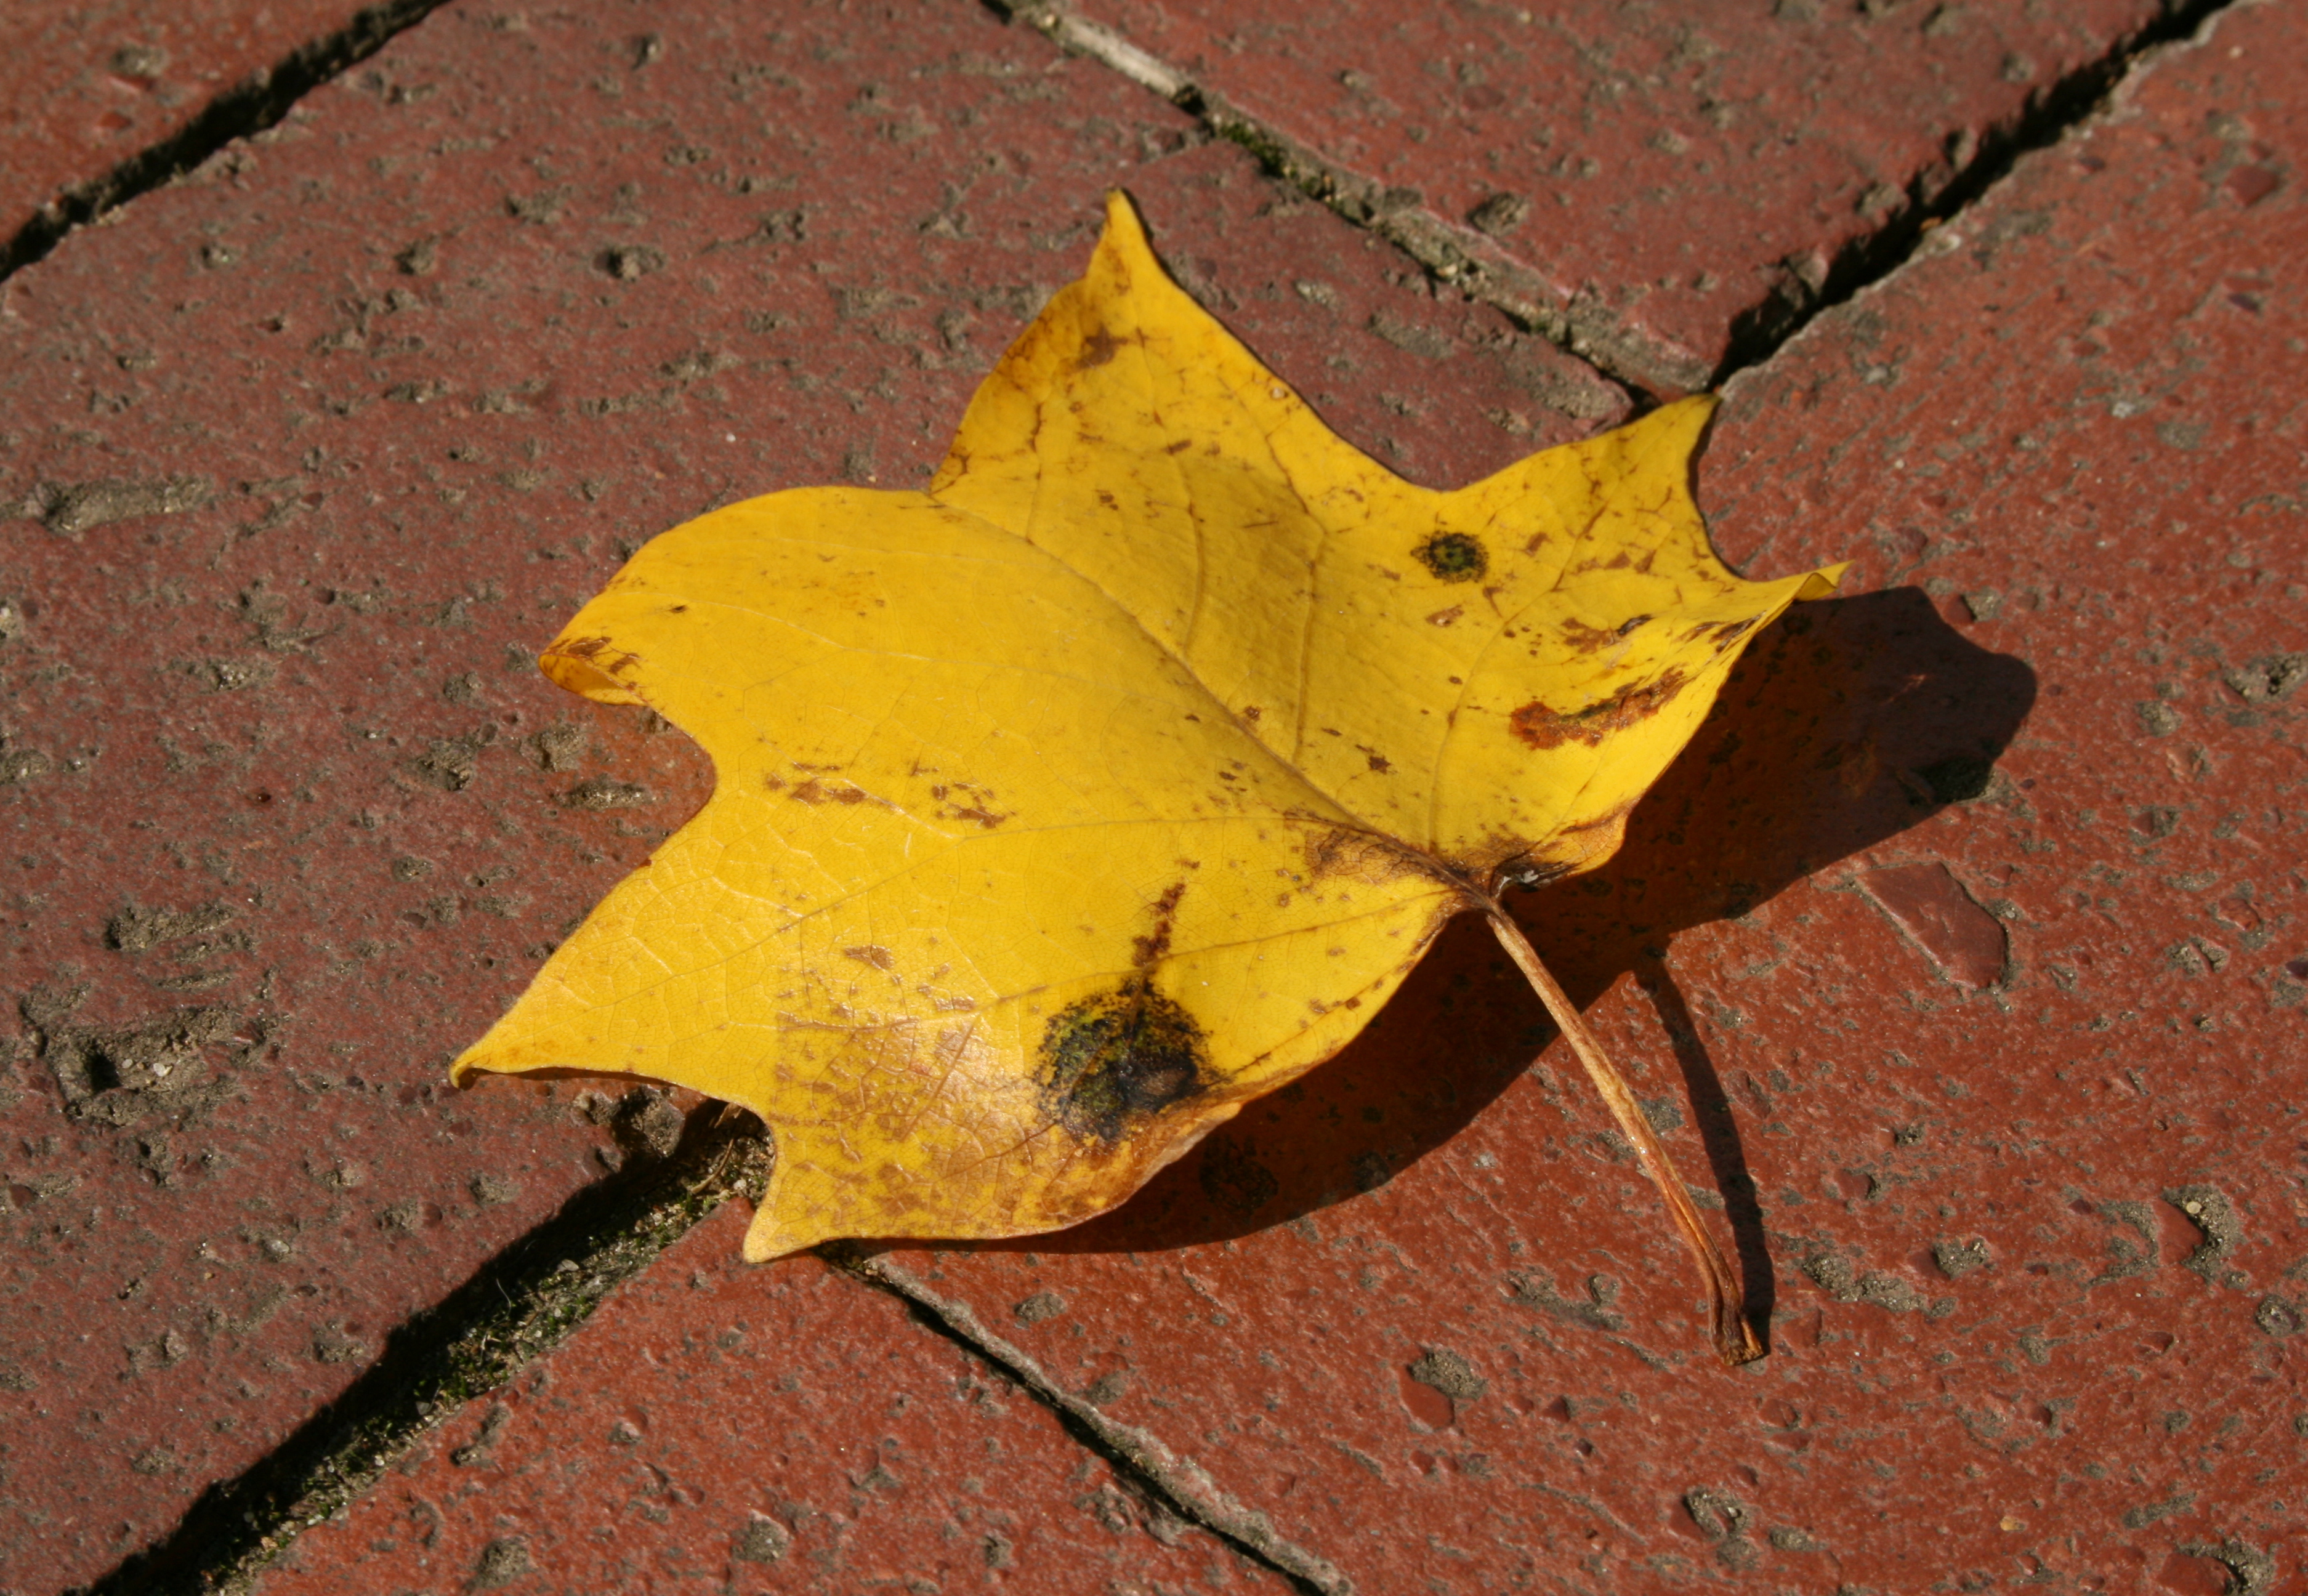 File:2008-07-11 Yellow leaf of Liriodendron tulipifera.jpg ...